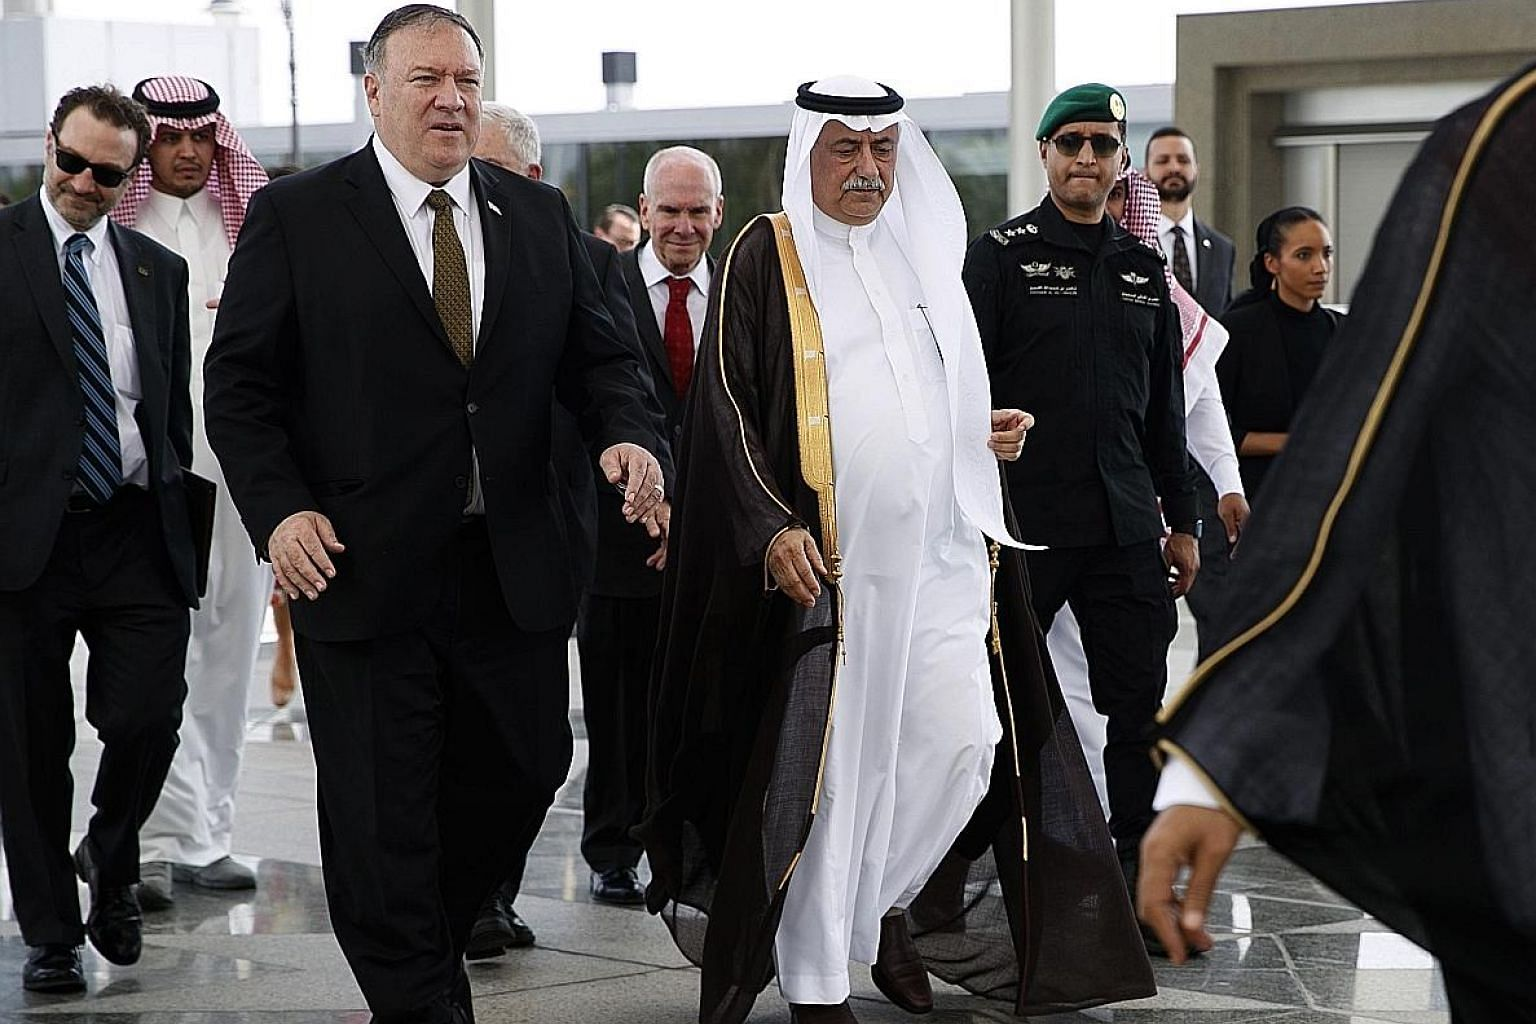 US Secretary of State Mike Pompeo being accompanied by Saudi Foreign Minister Ibrahim Abdulaziz Al-Assaf upon his arrival in Jeddah yesterday. Mr Pompeo was scheduled to hold talks with Saudi Arabia and the United Arab Emirates on the tensions with I